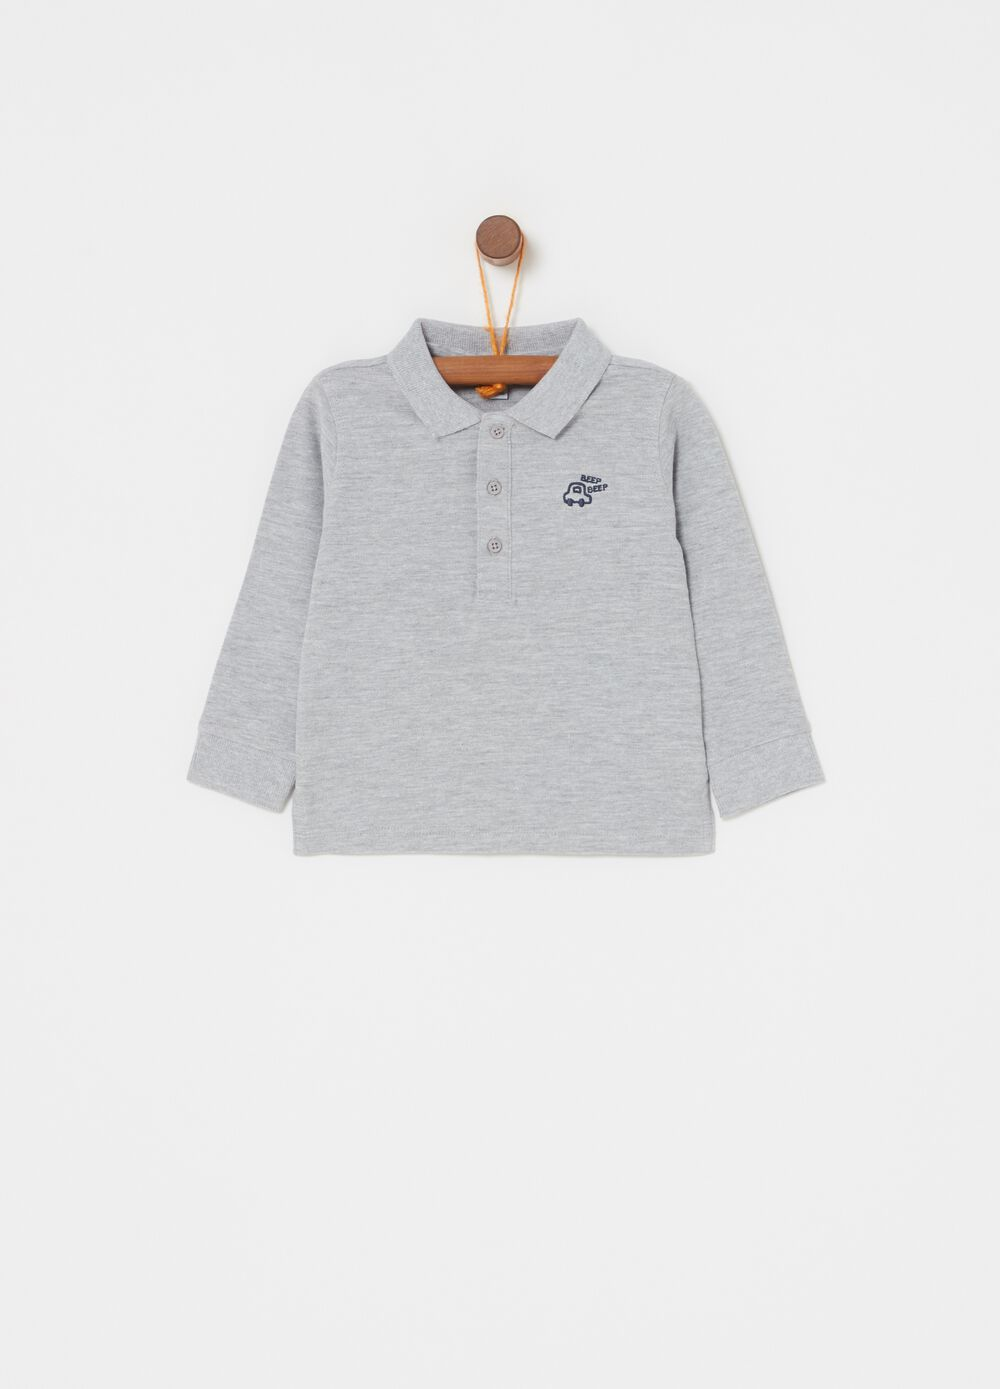 Mélange polo shirt with long sleeves and embroidery